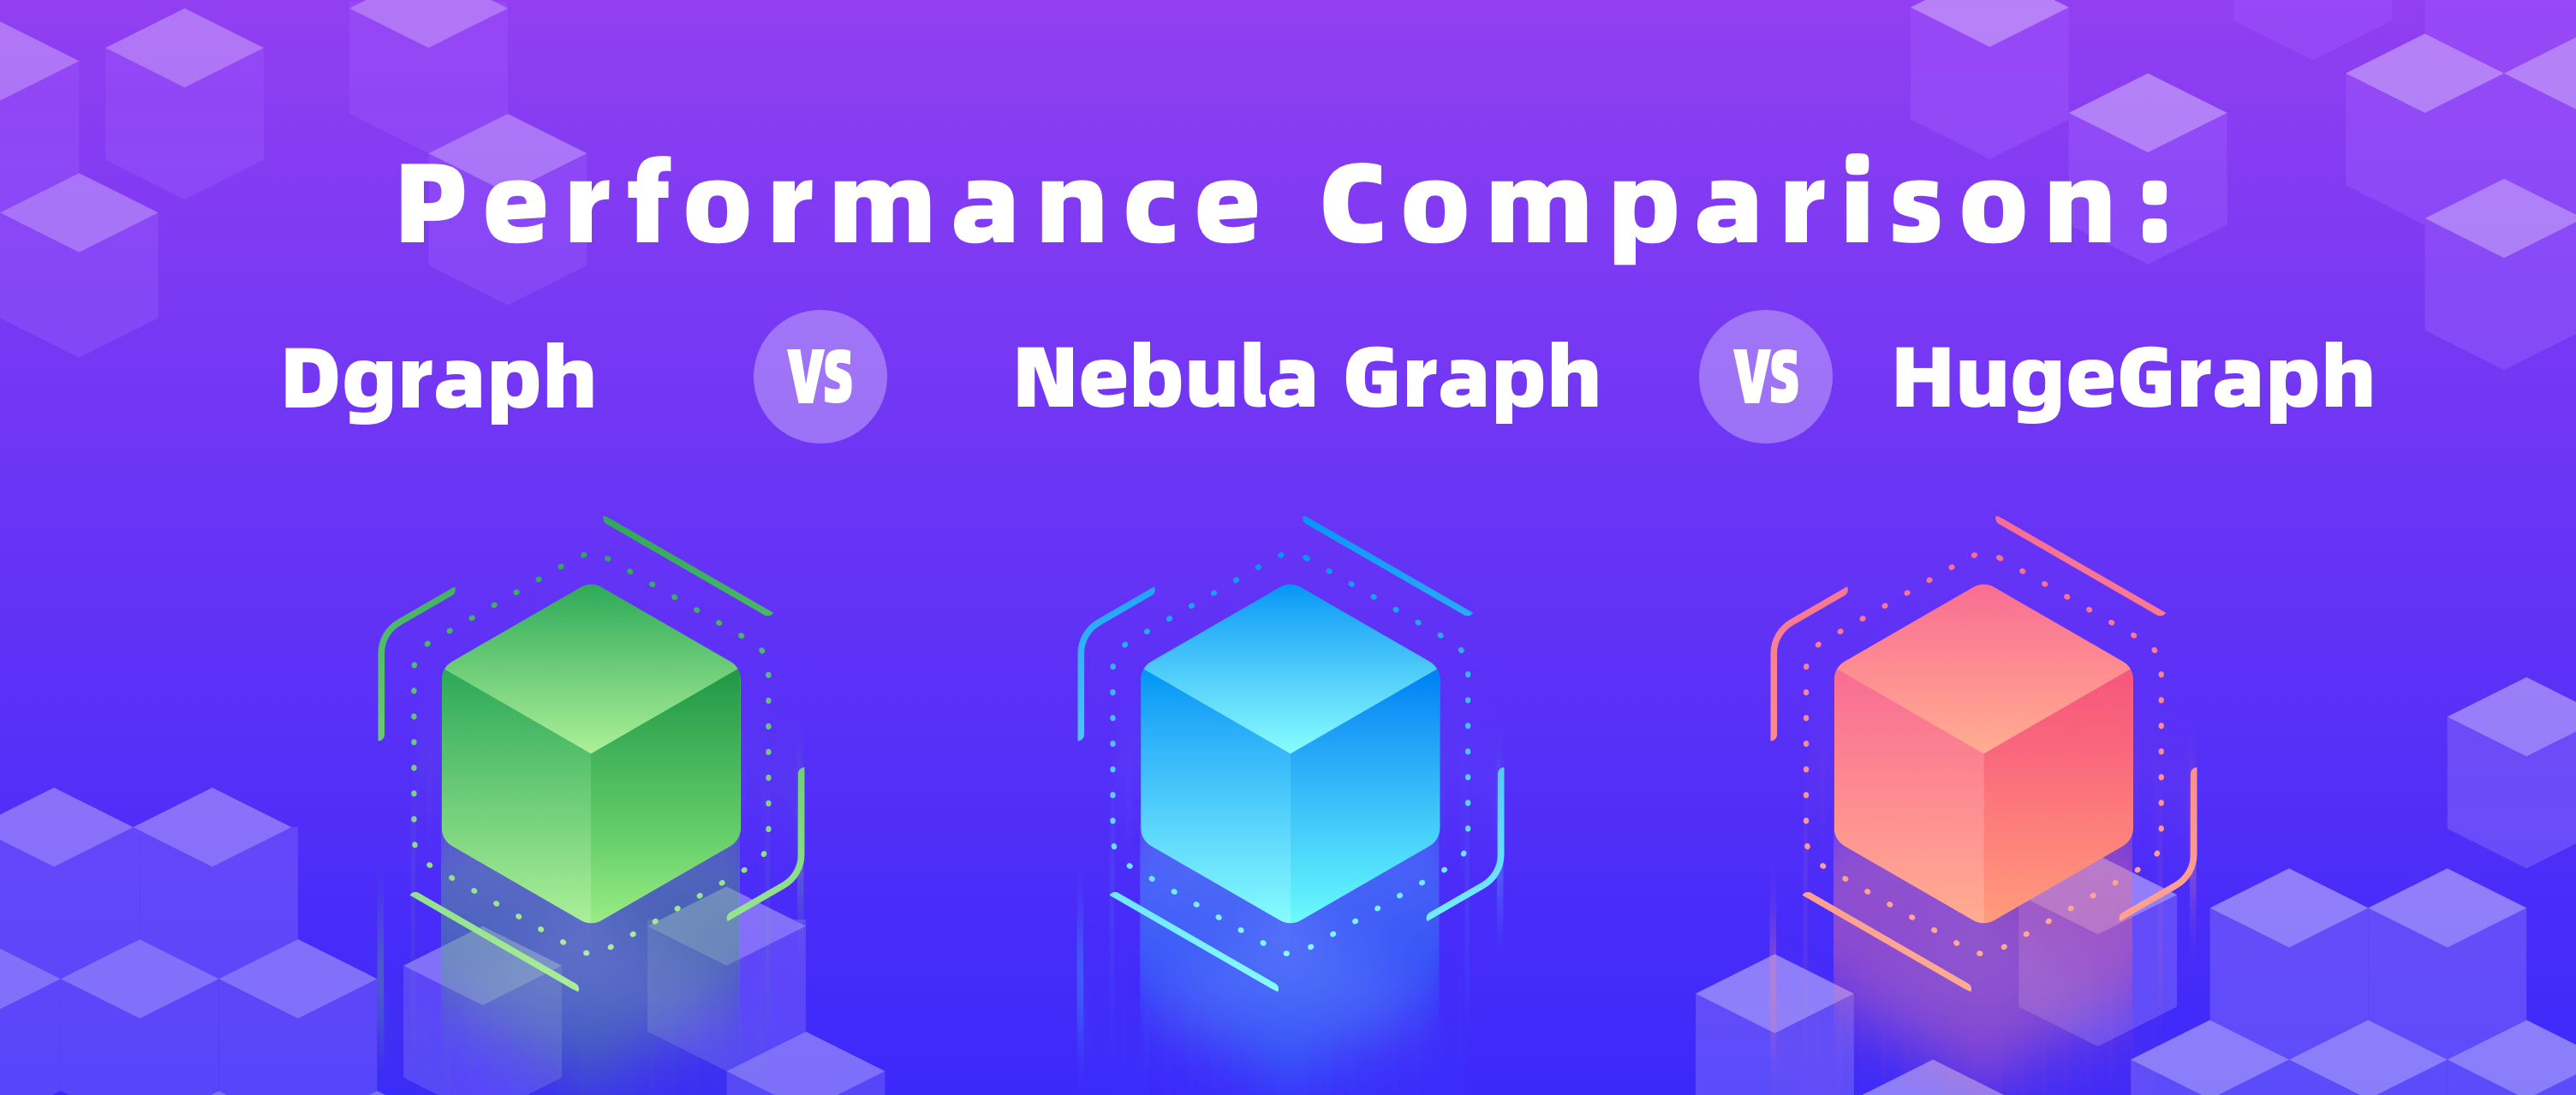 Benchmarking the Mainstream Open Source Distributed Graph Databases at Meituan: Nebula Graph vs Dgraph vs JanusGraph